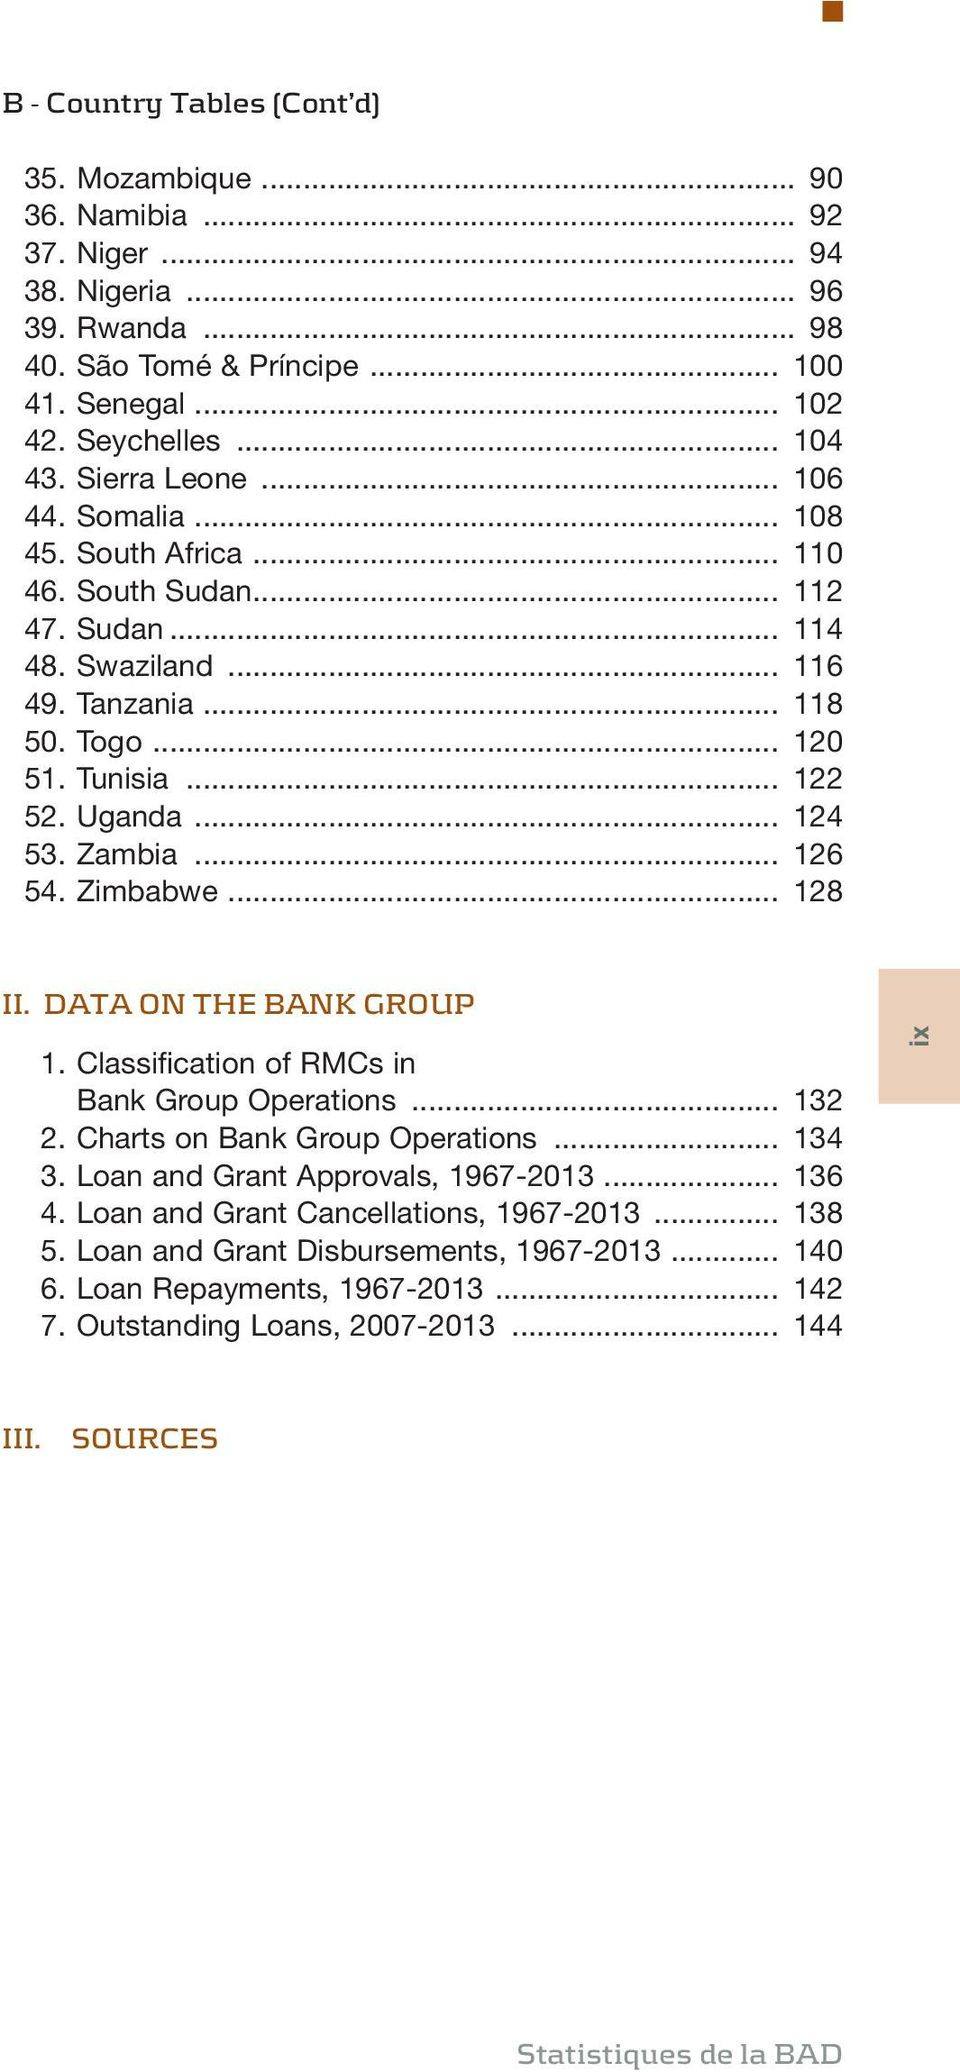 Zambia... 126 54. Zimbabwe... 128 II. DATA ON THE BANK GROUP 1. Classification of RMCs in Bank Group Operations... 132 2. Charts on Bank Group Operations... 134 3. Loan and Grant Approvals, 1967-2013.